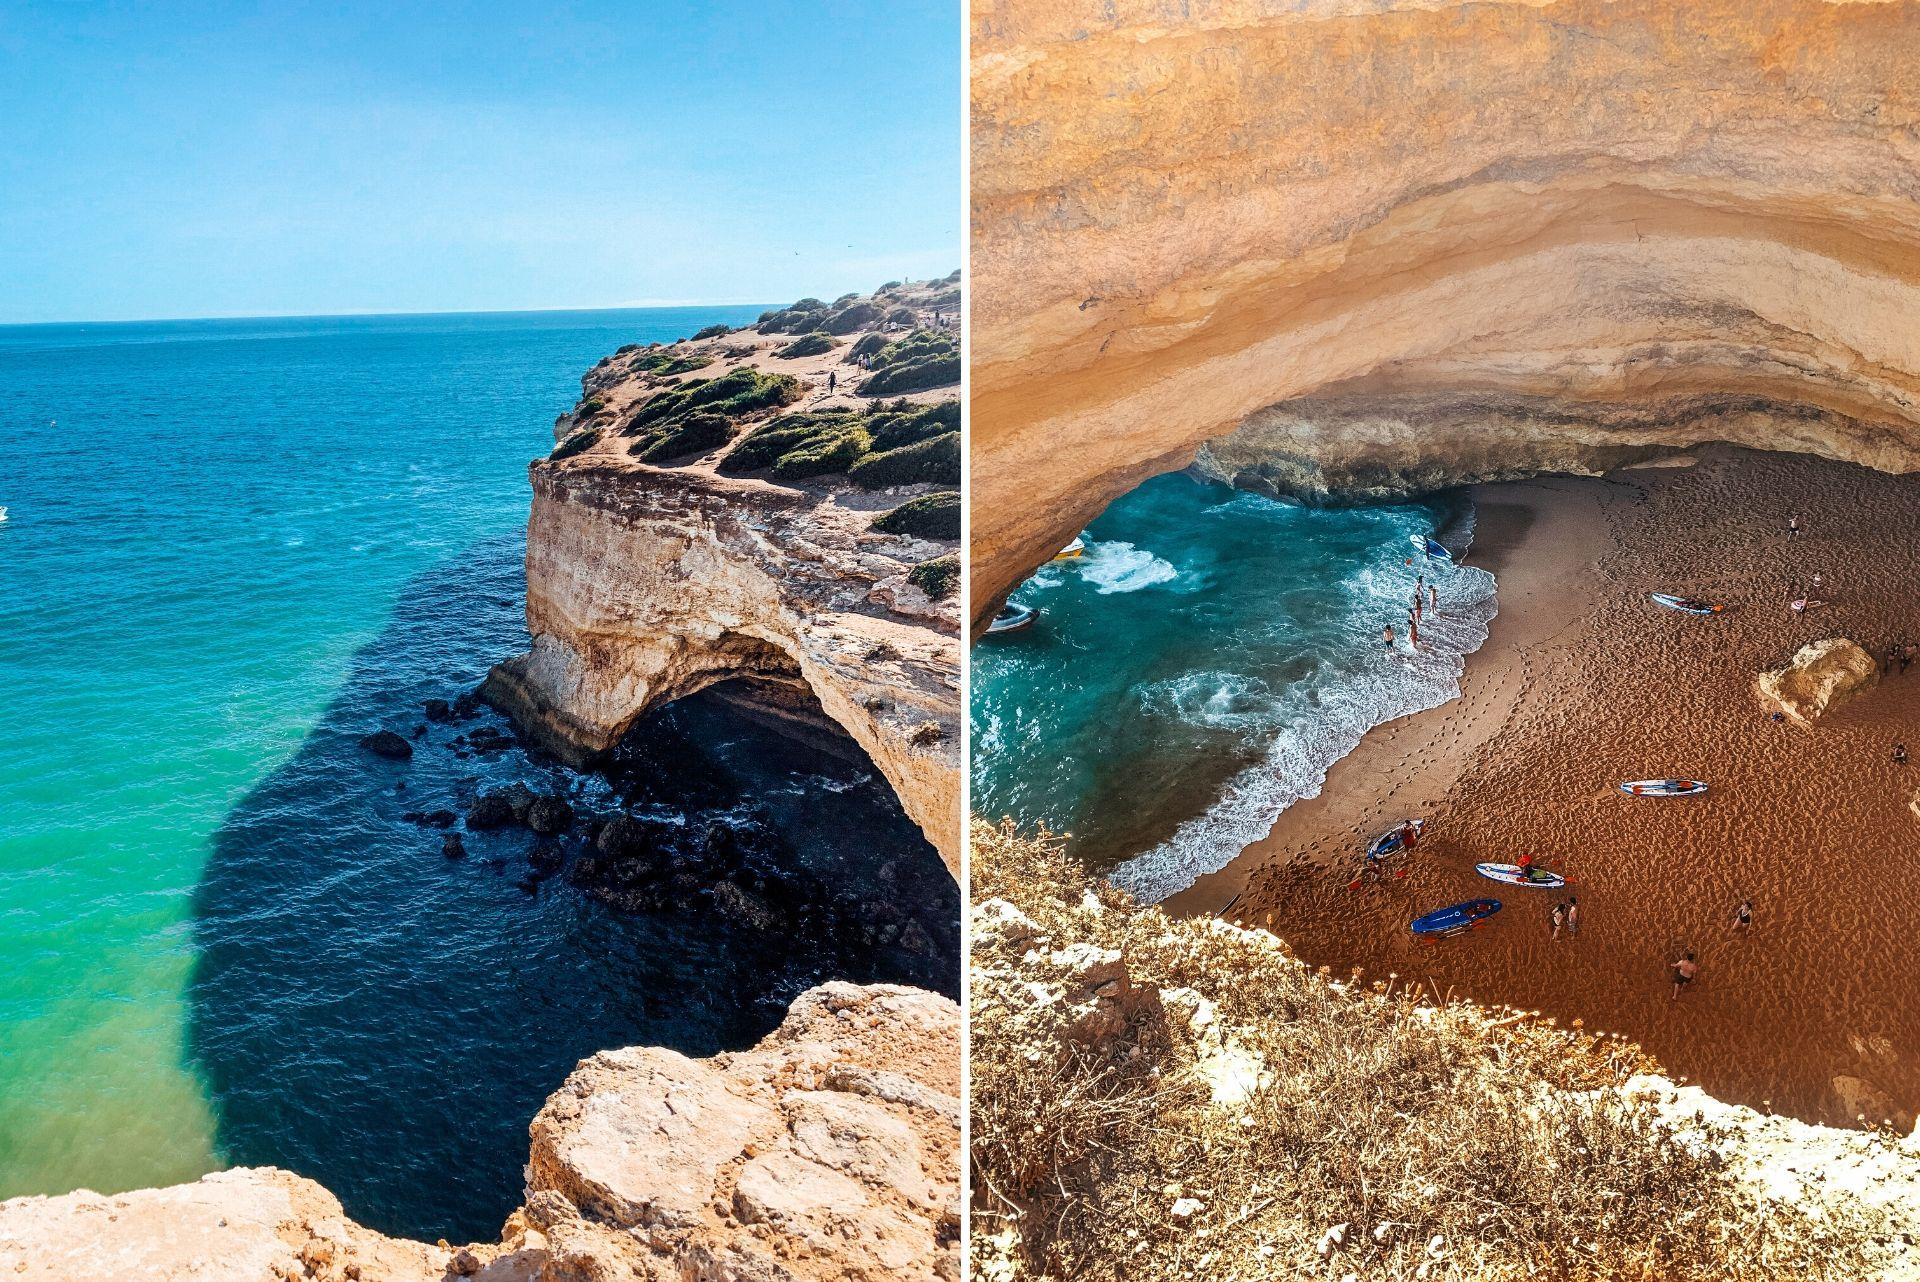 crystal-clear-turquoise-seas-and-cliffside-on-the-algarve-coast